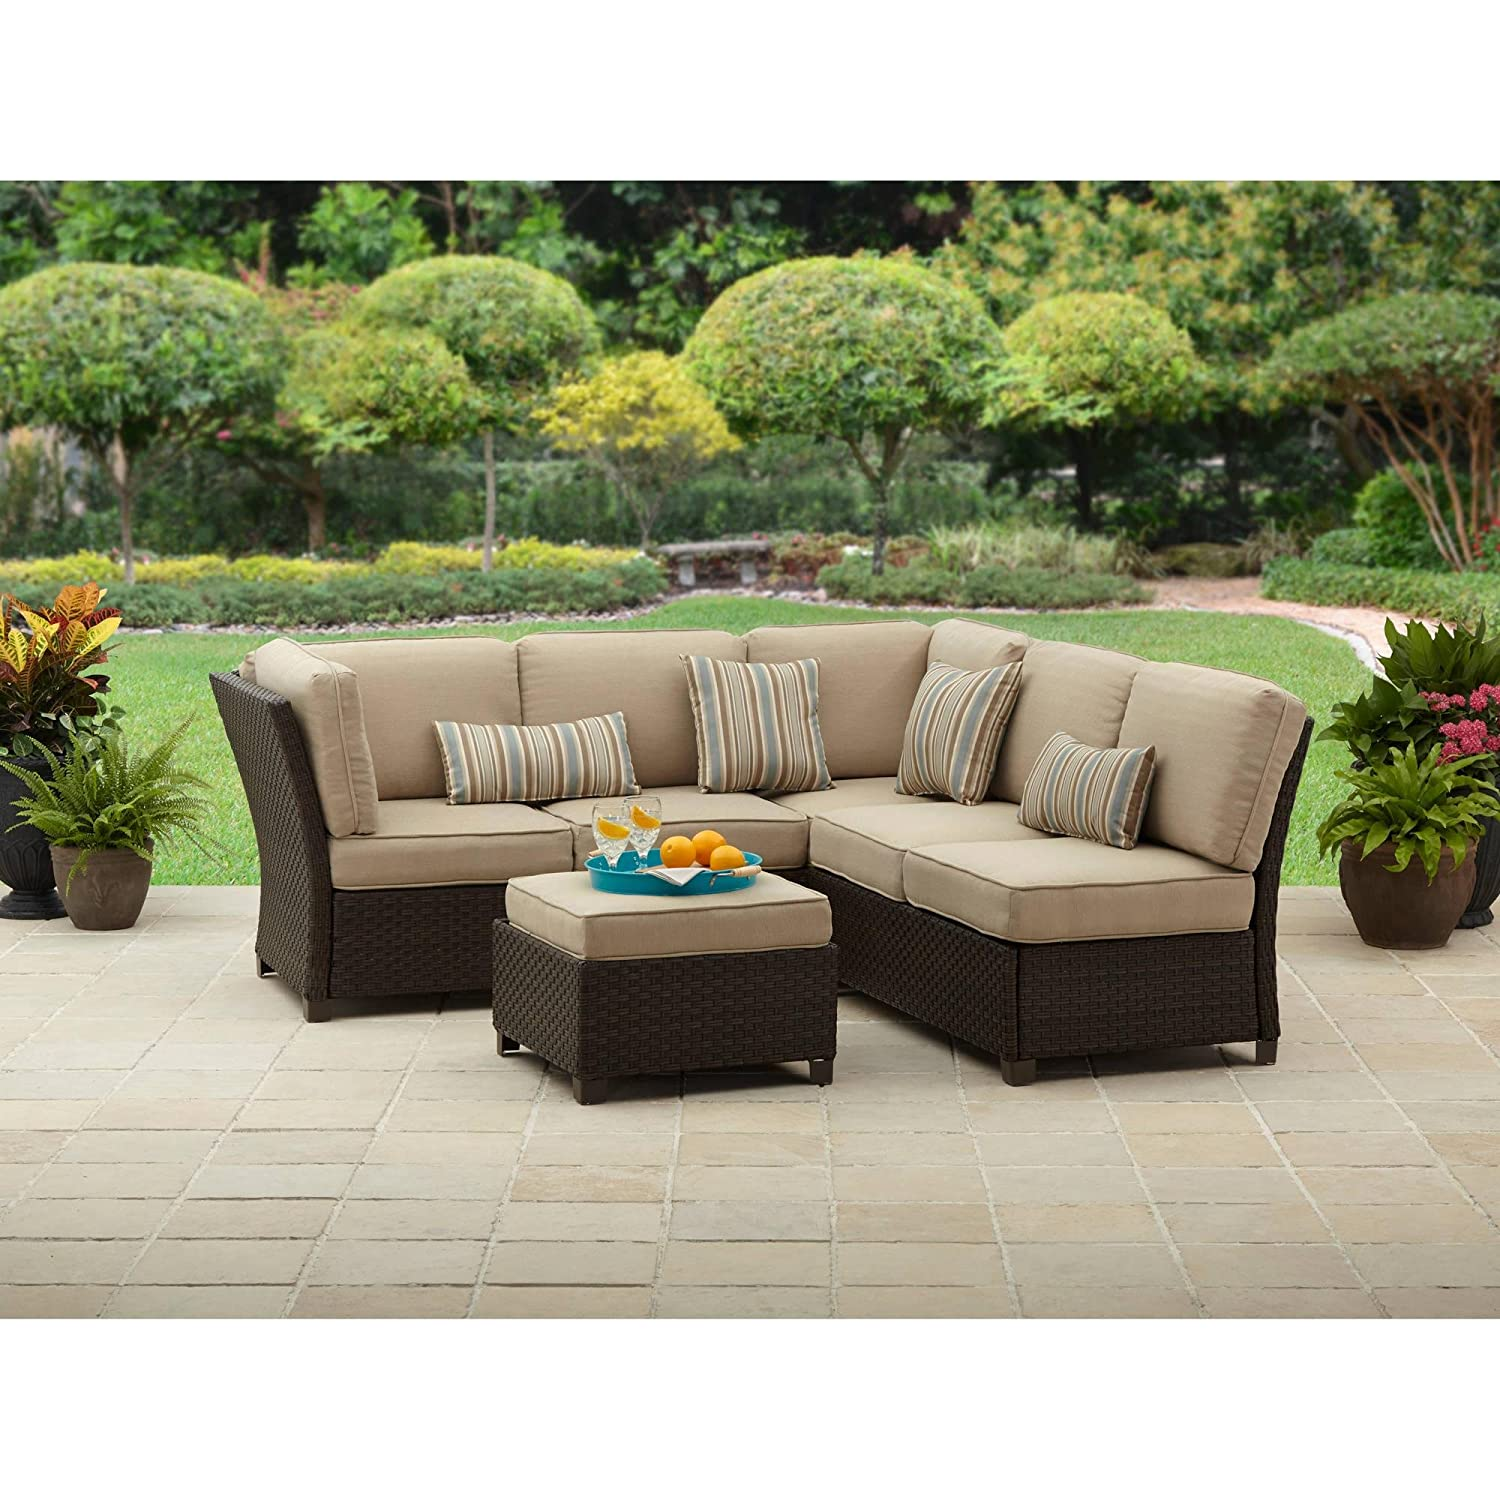 Amazon Outdoor Patio Better Homes and Gardens Cadence Wicker